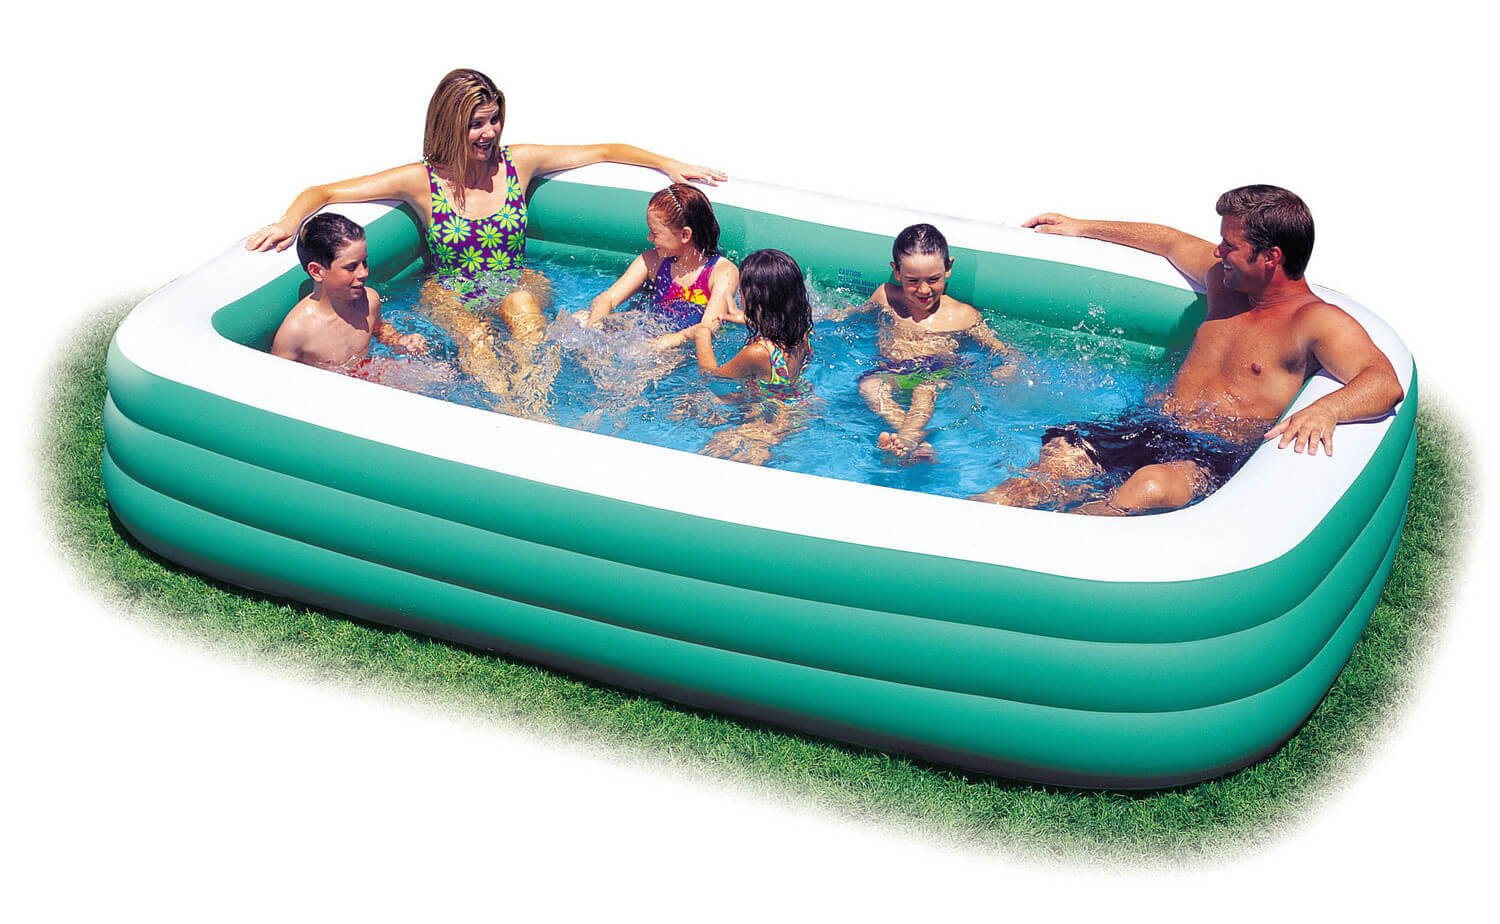 This longer inflatable pool is manageable in size, but large enough to allow multiple people to swim at once. This model is perfect for families with older children who need a bit more space to splash around and play in the water.